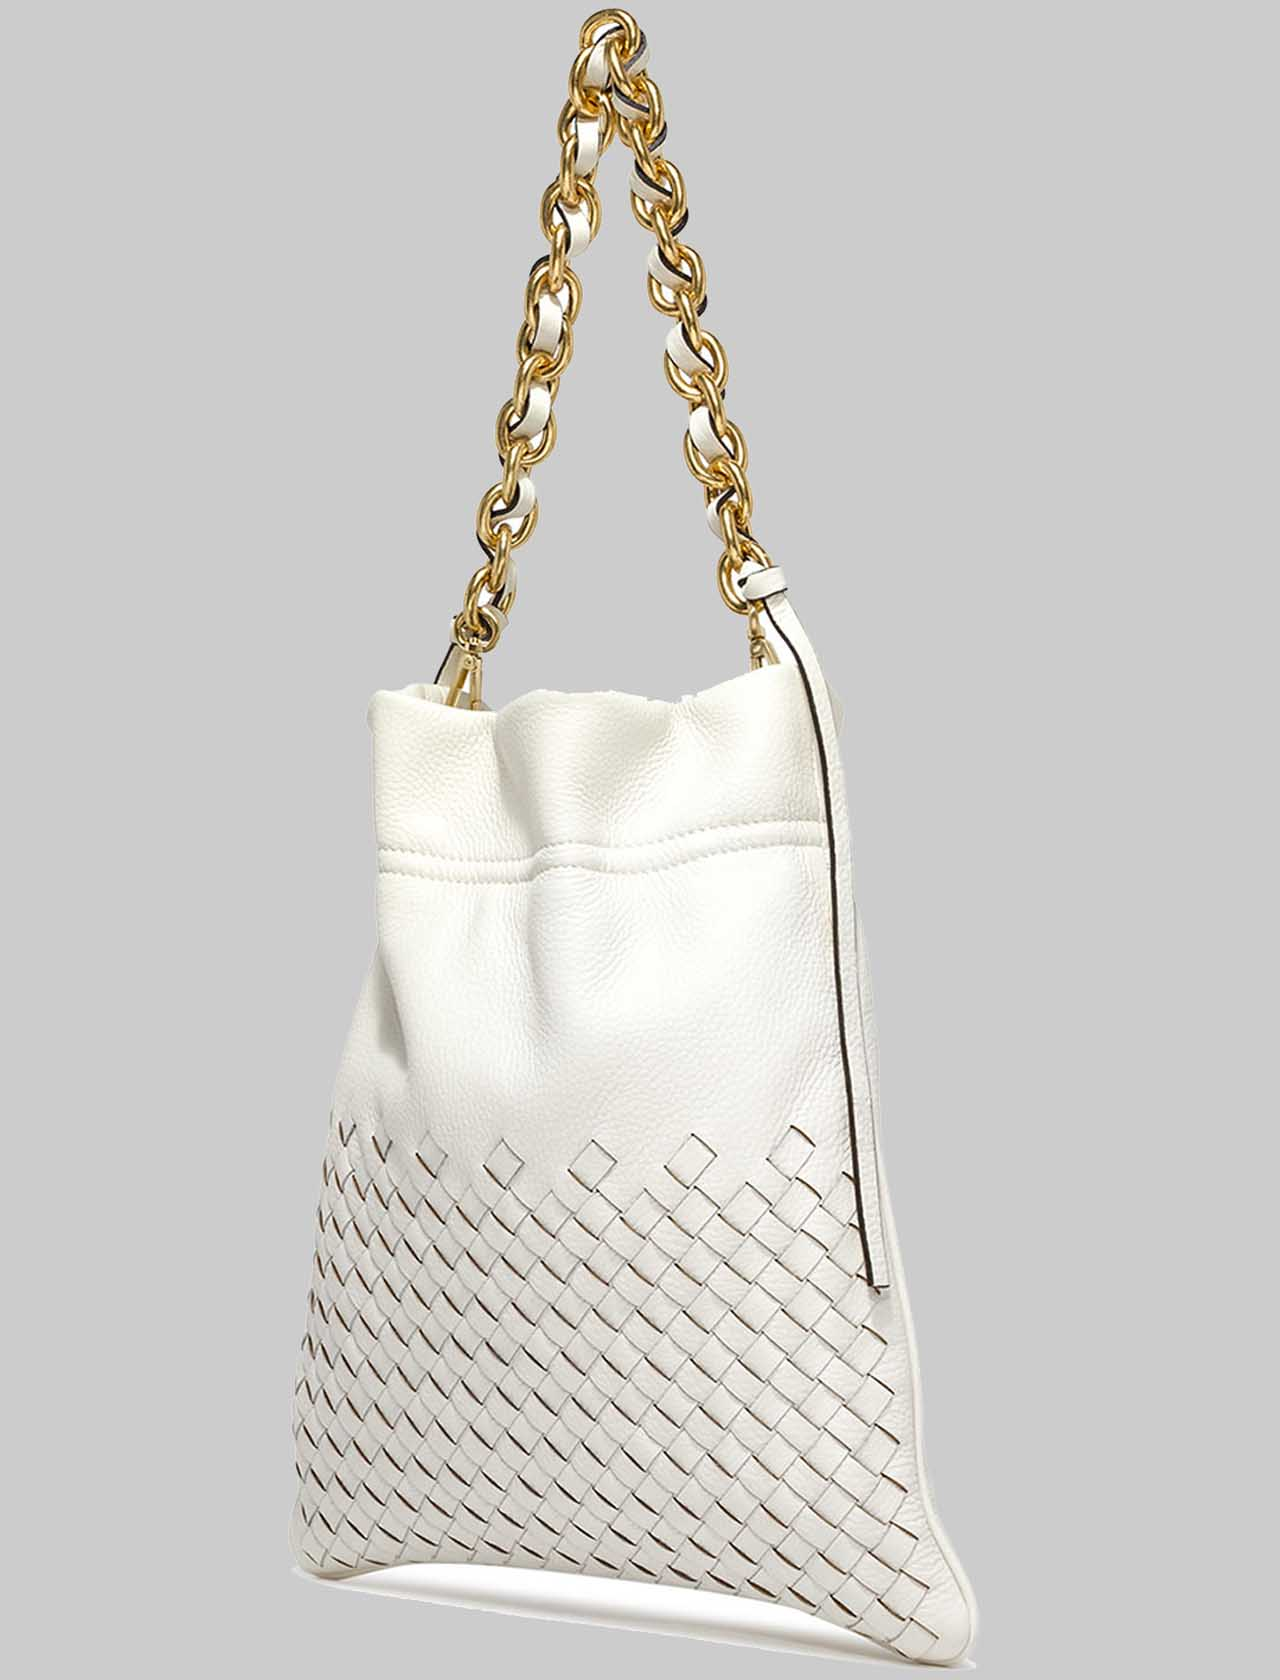 Small Memory Woman Shoulder Bag In Cream Braided Leather With Gold Chain Shoulder Strap Gianni Chiarini | Bags and backpacks | BS83813890